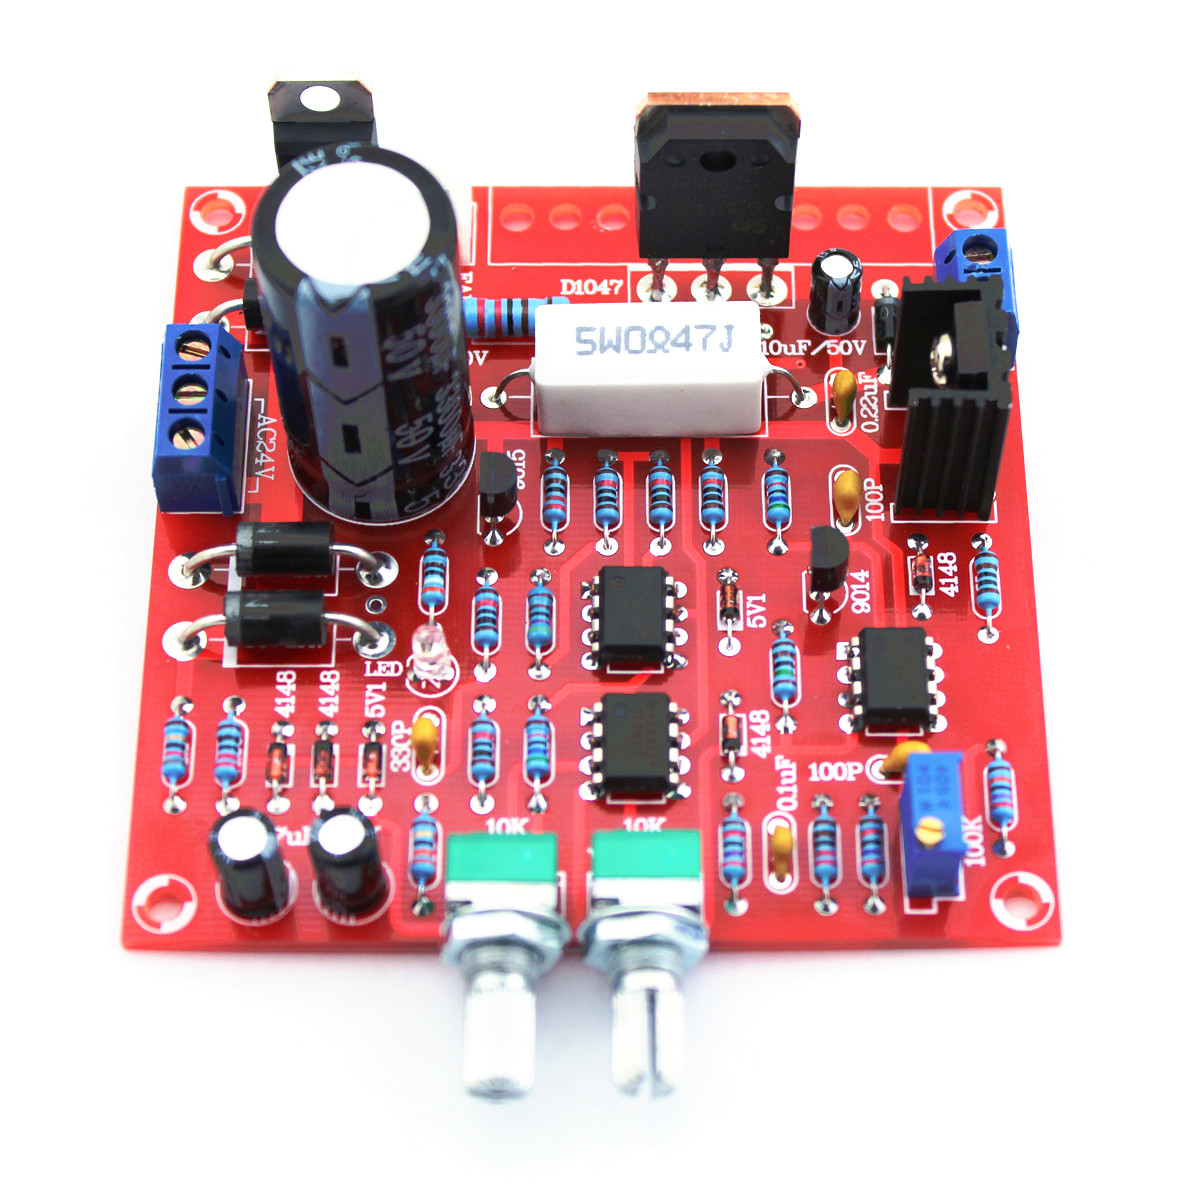 0 30v 2ma 3a Continuously Adjustable Dc Regulated Power Supply Short Simple With Overcurrent New Module Diy Kit